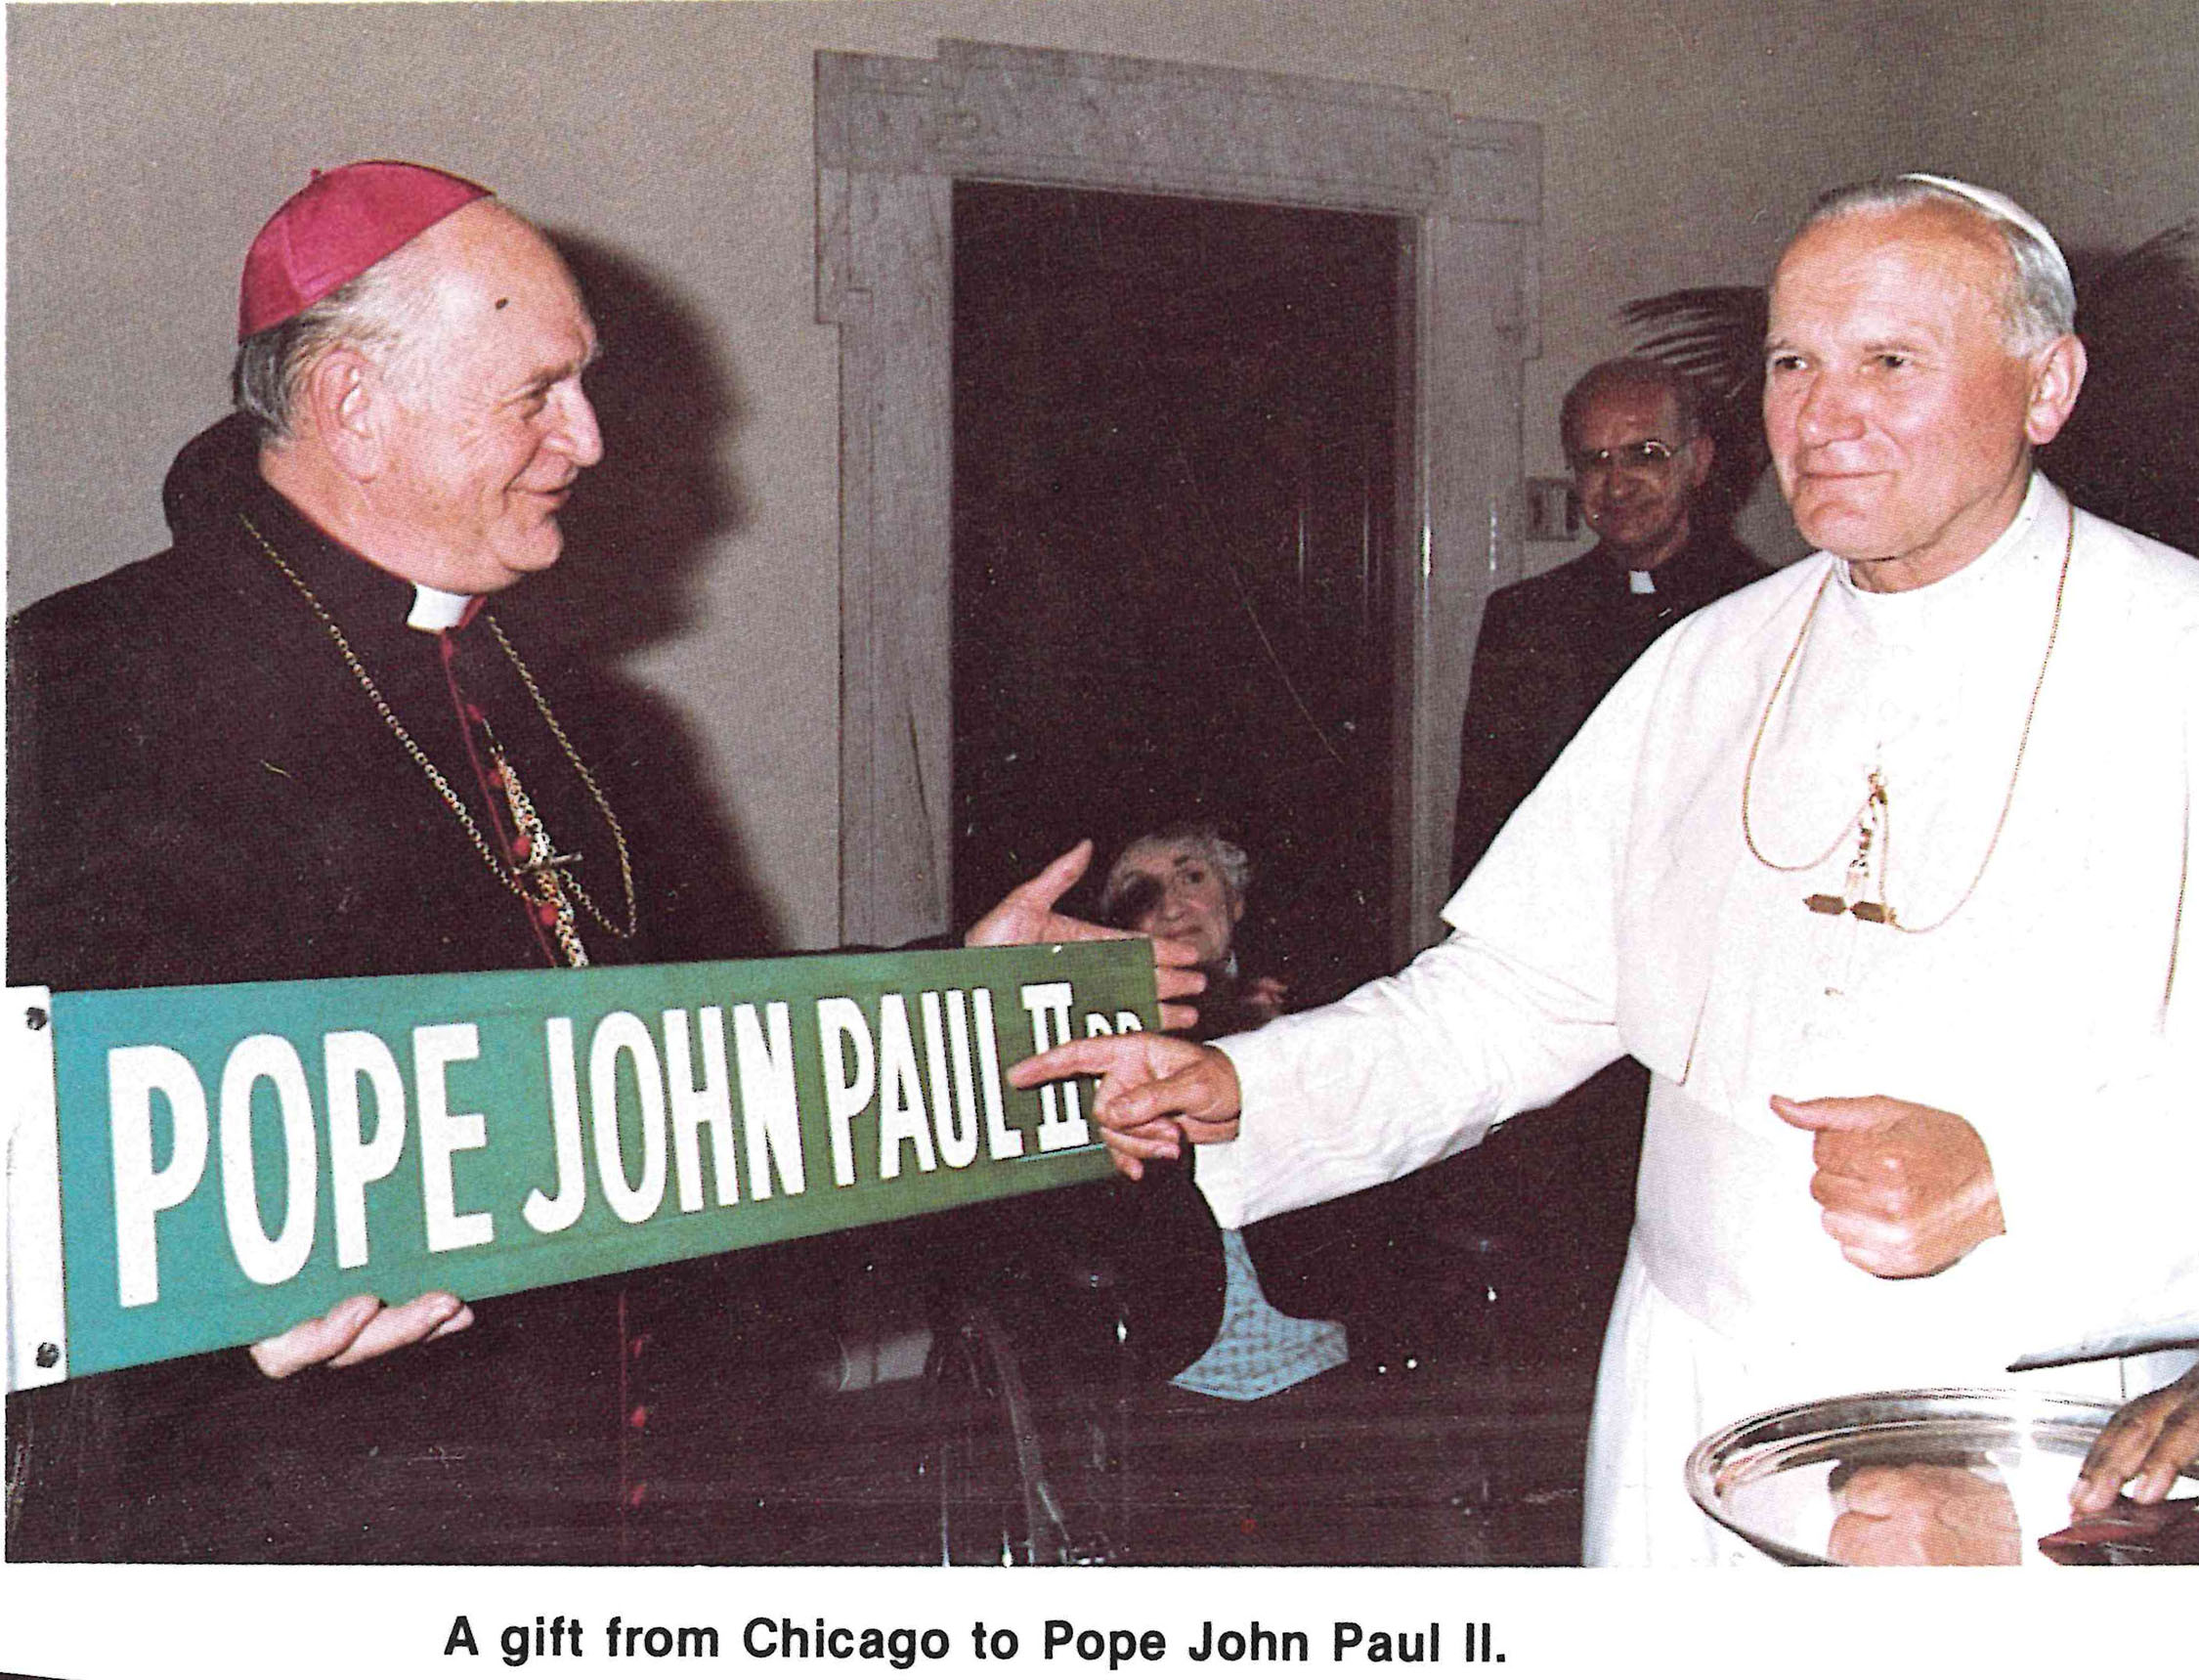 Chicago gift Pope John Paul II